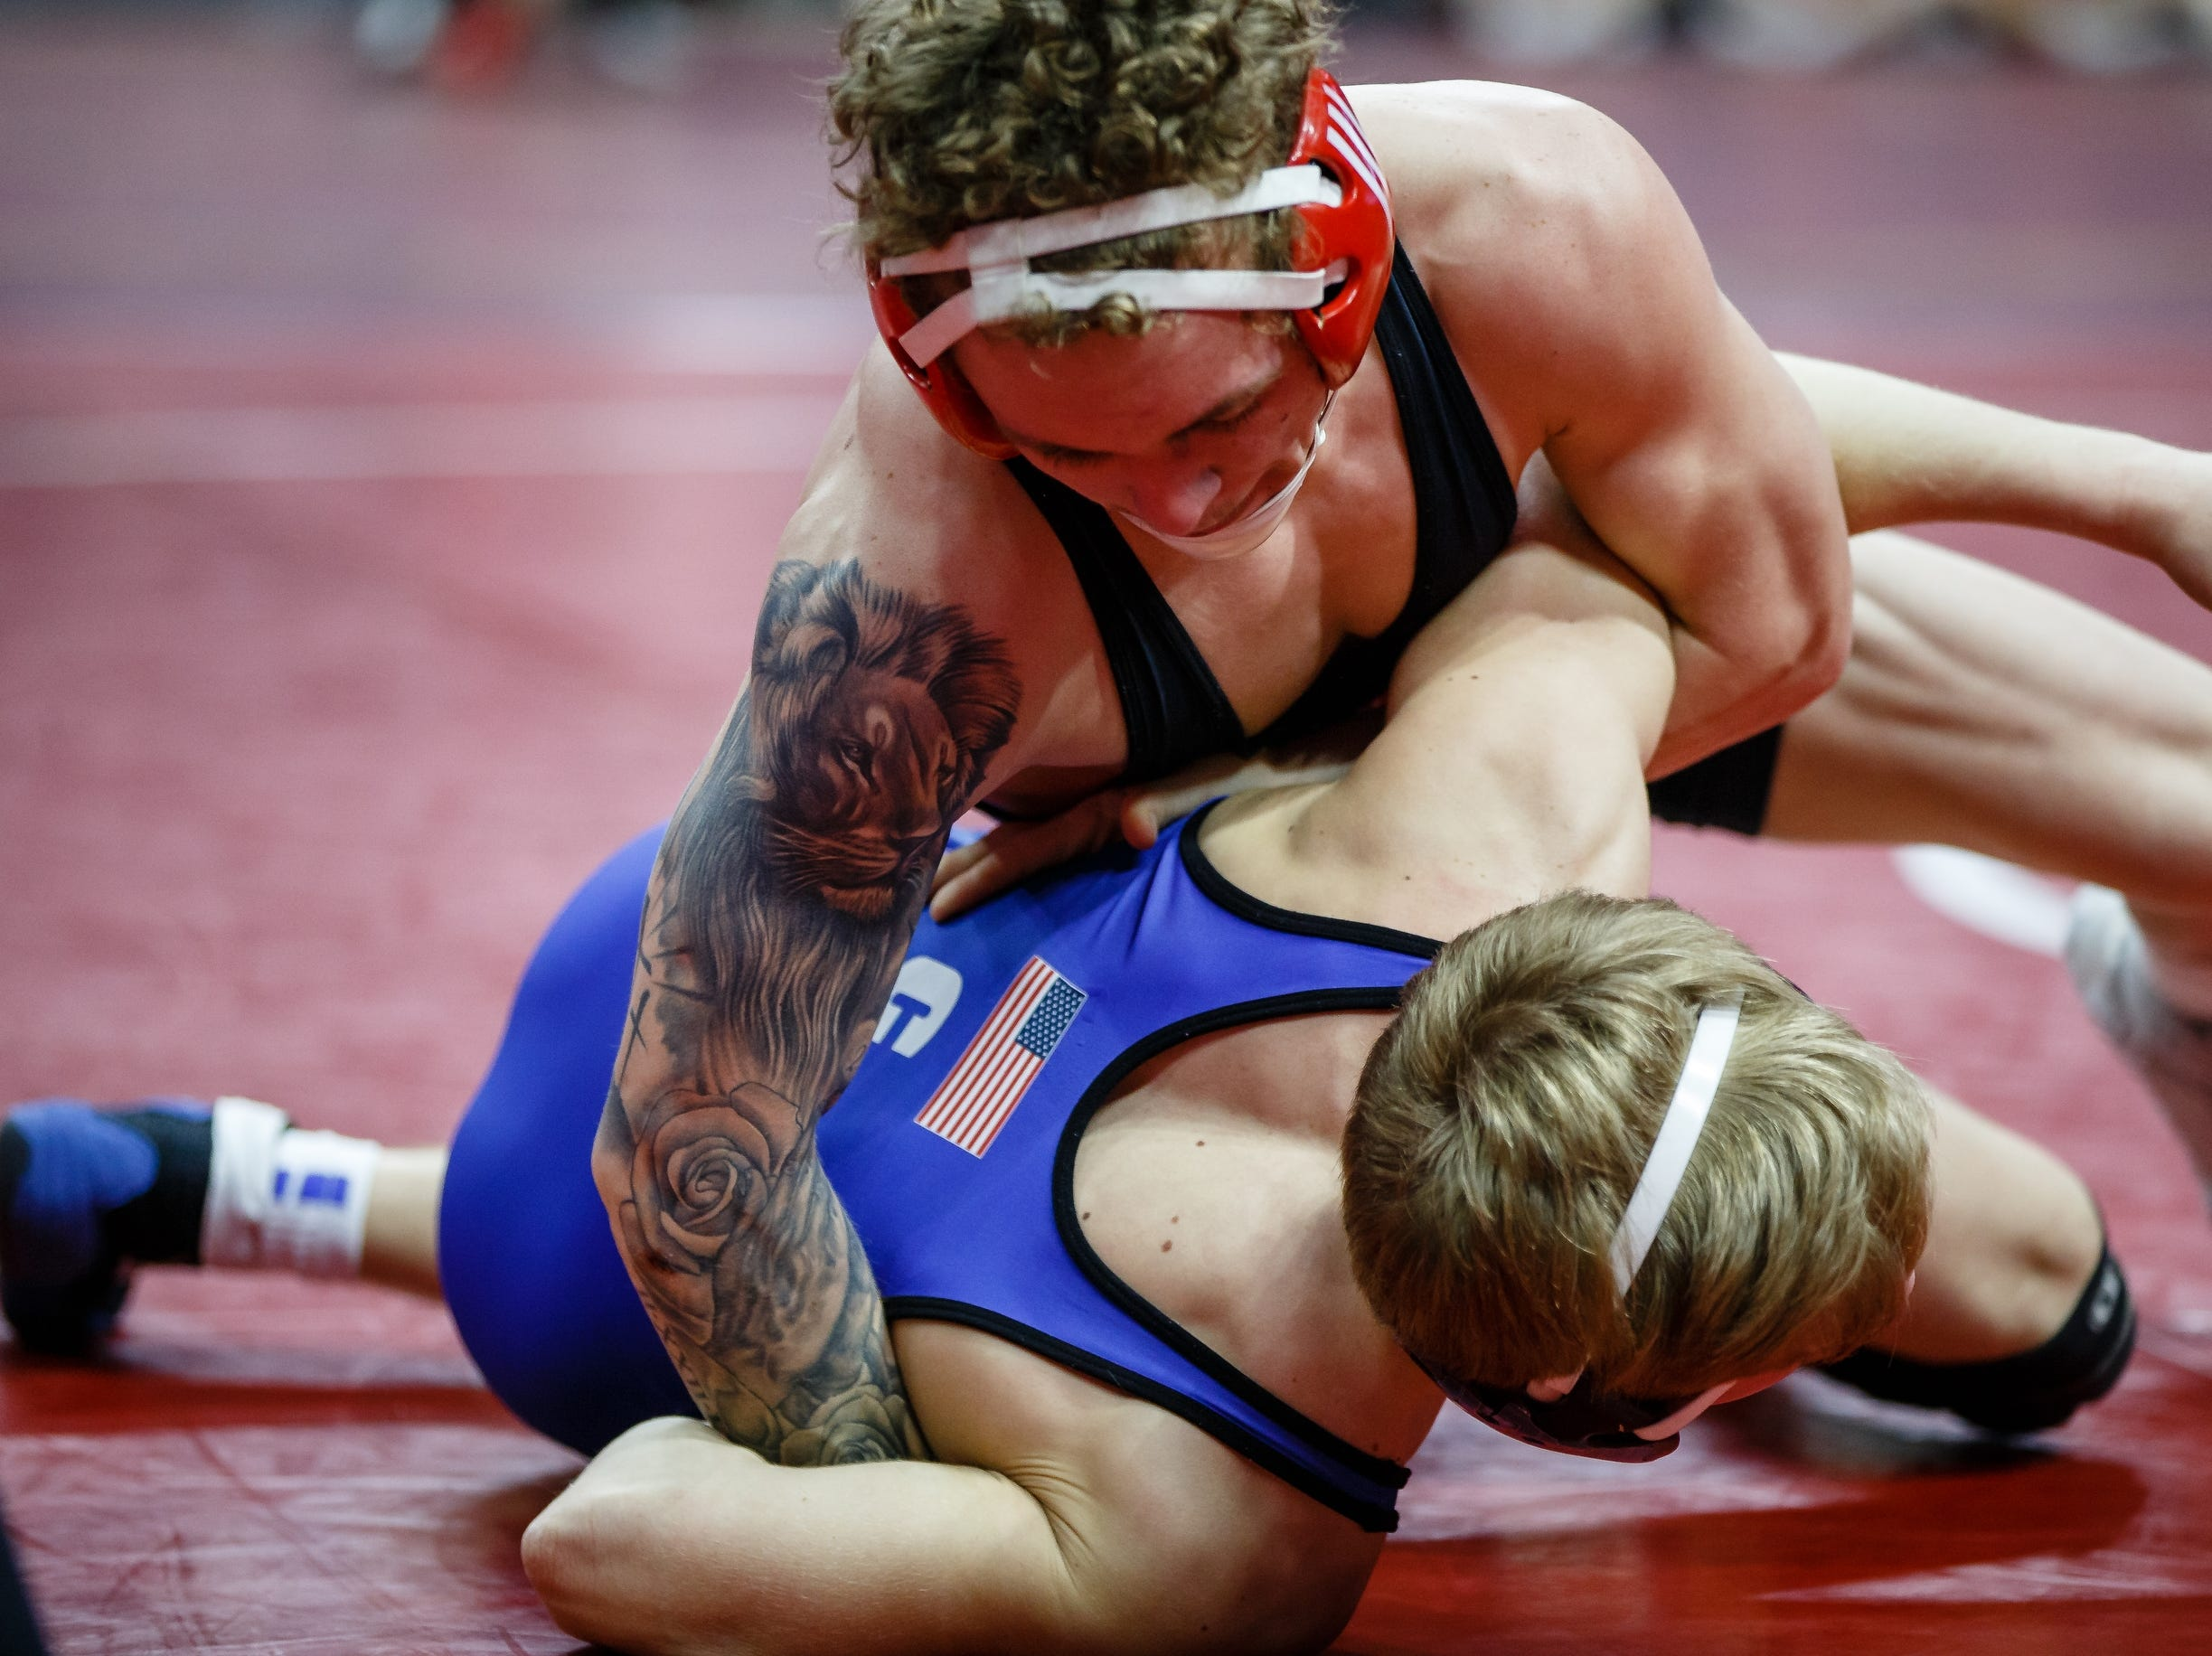 Samual Stevens of Clear Creek-Amana wrestles Matthew Jordan of Des Moines East during their 3A 126 lb match at the state wrestling tournament on Thursday, Feb. 14, 2019 in Des Moines.